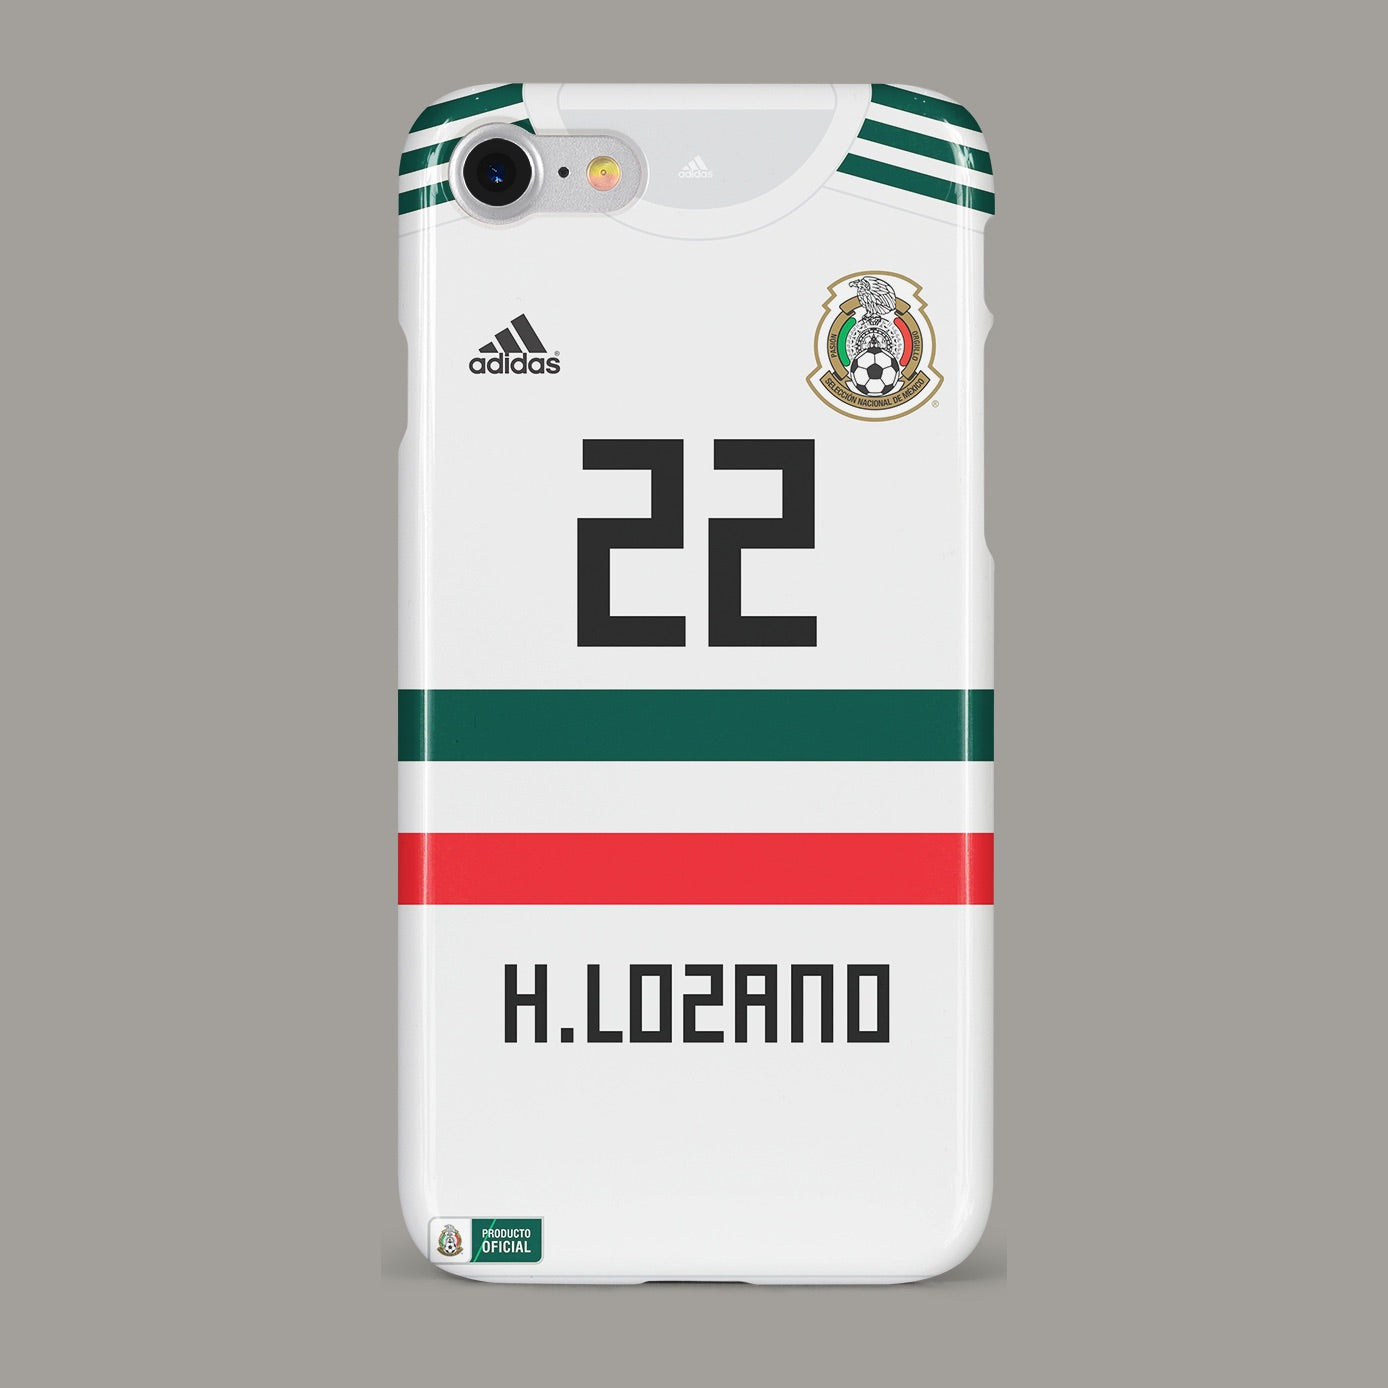 cheaper d6496 7706a Mexico Away Jersey - 19/20